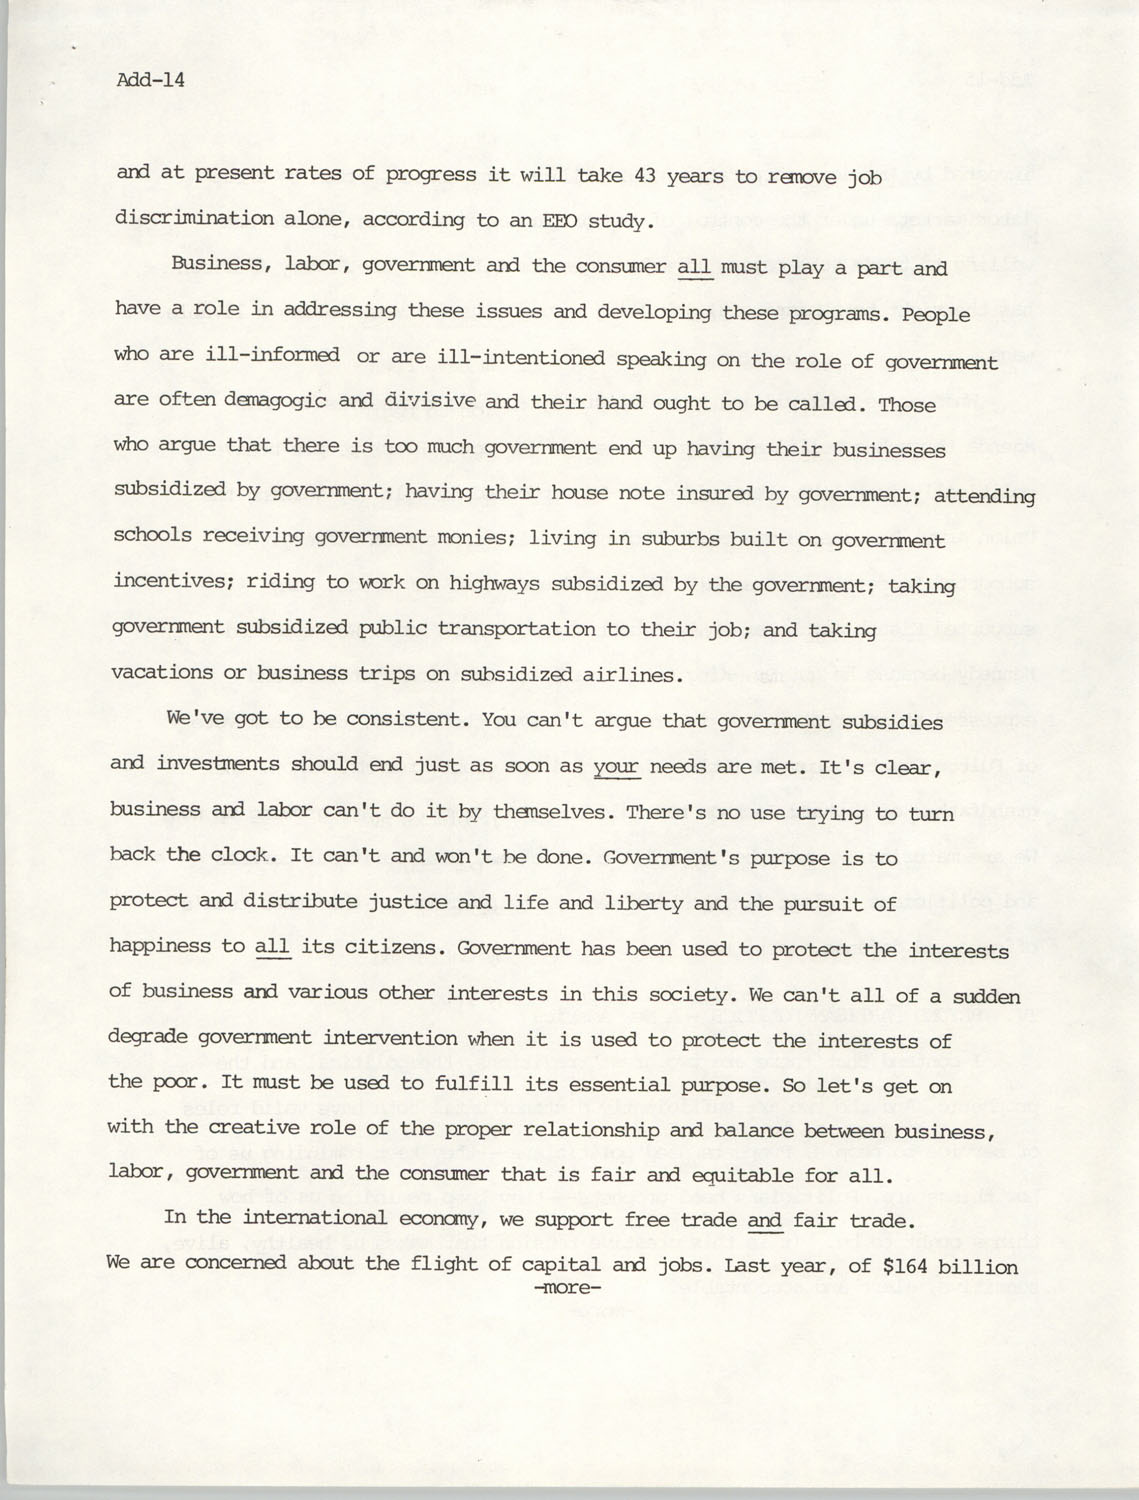 Speech Before the Republican National Committee, Page 14